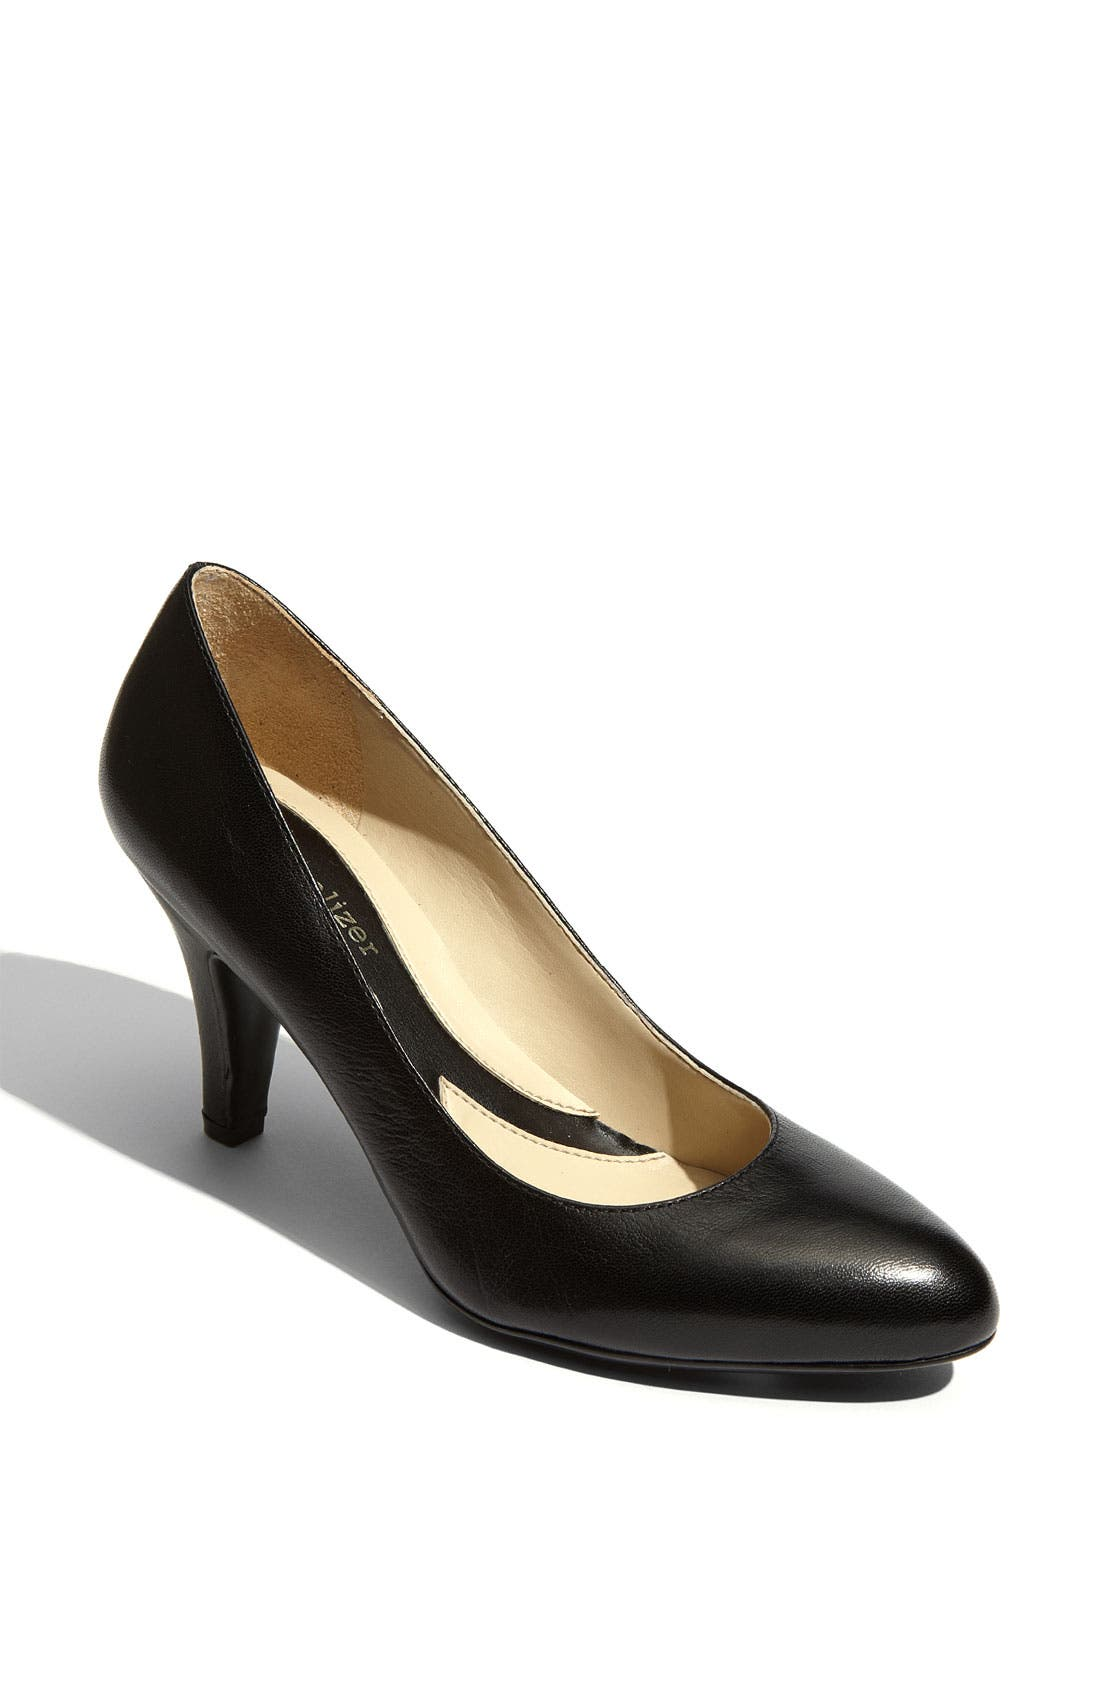 Main Image - Naturalizer 'Clava' Pump